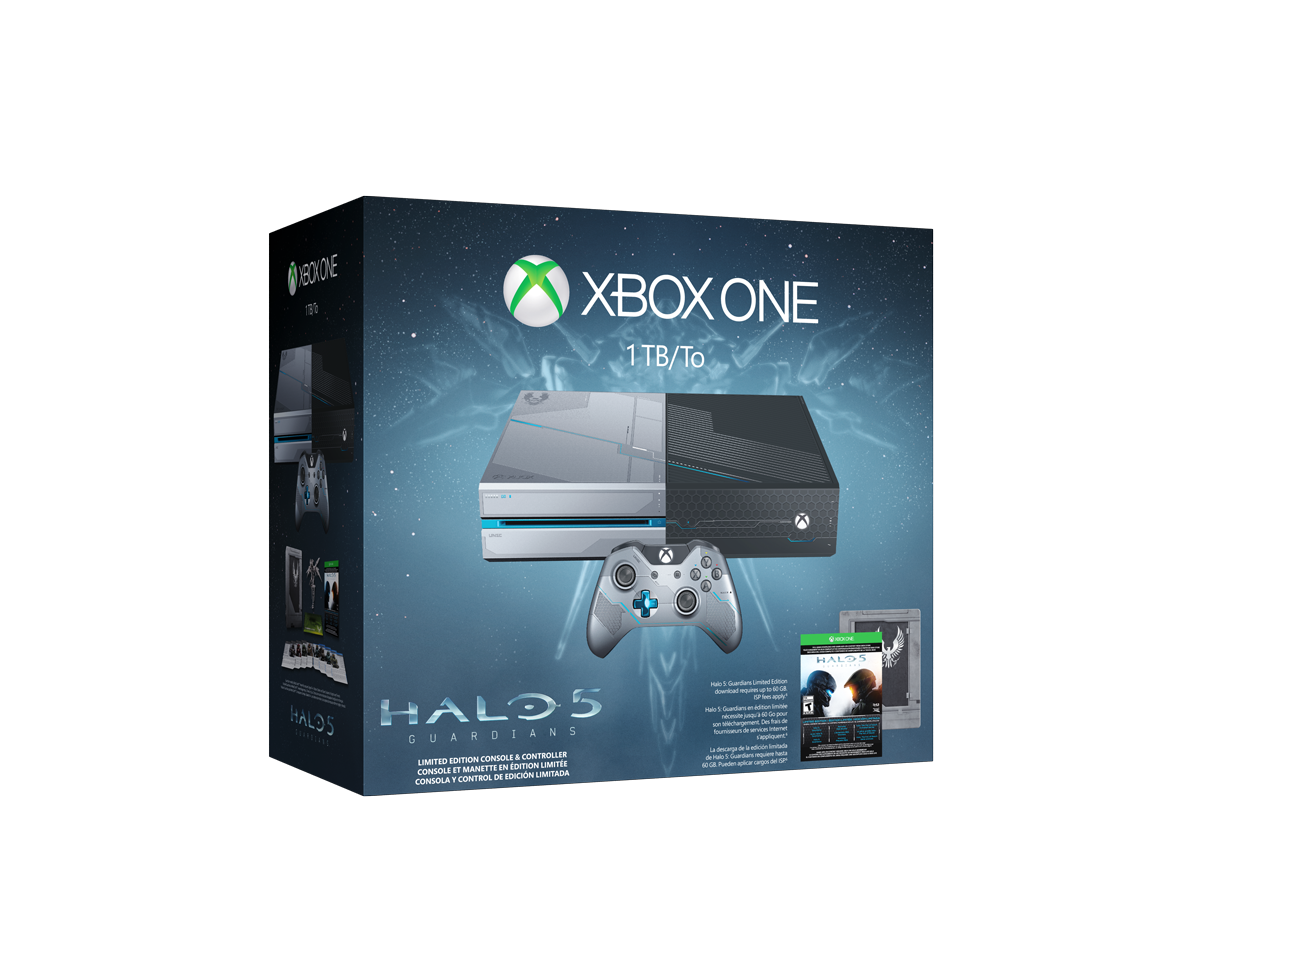 Xbox-One-Limited-Edition-Halo-5-Guardians-Bundle-Angled-png